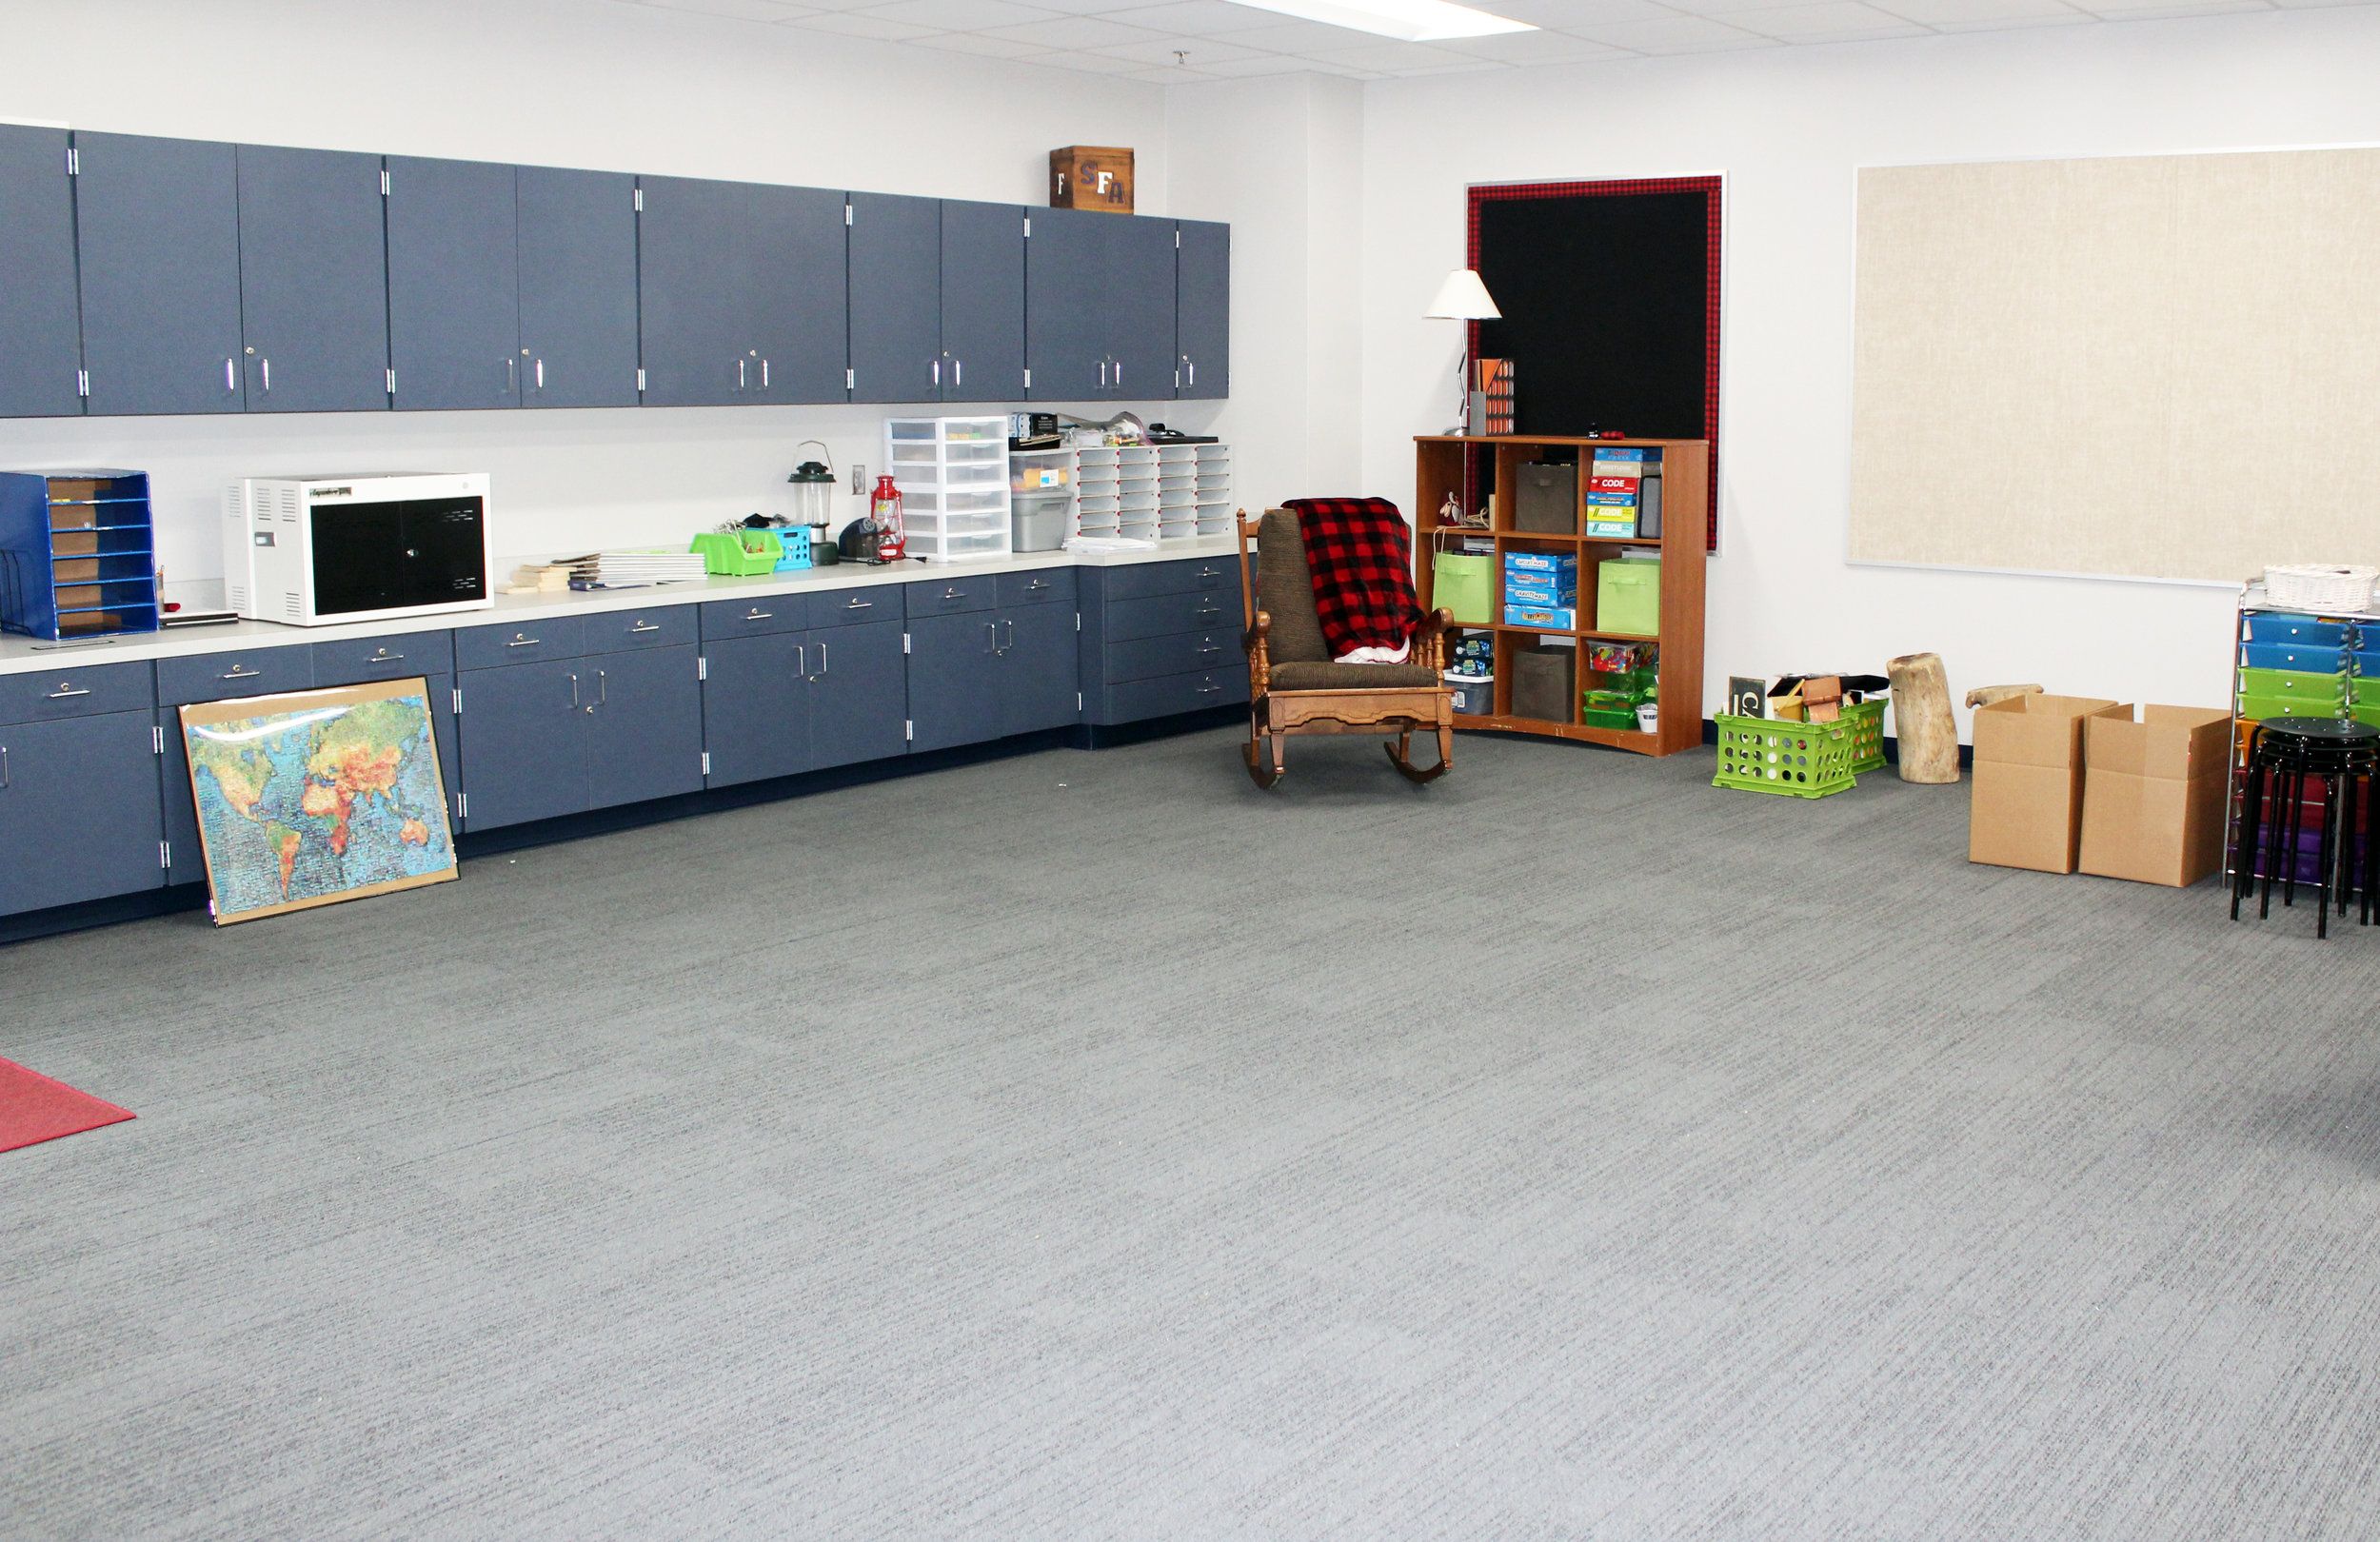 Six new classrooms were completed at Tibbals Elementary at the end of the 2018 - 19 school year. They will be used as classrooms for the first time when school resumes on Aug. 15, 2019.